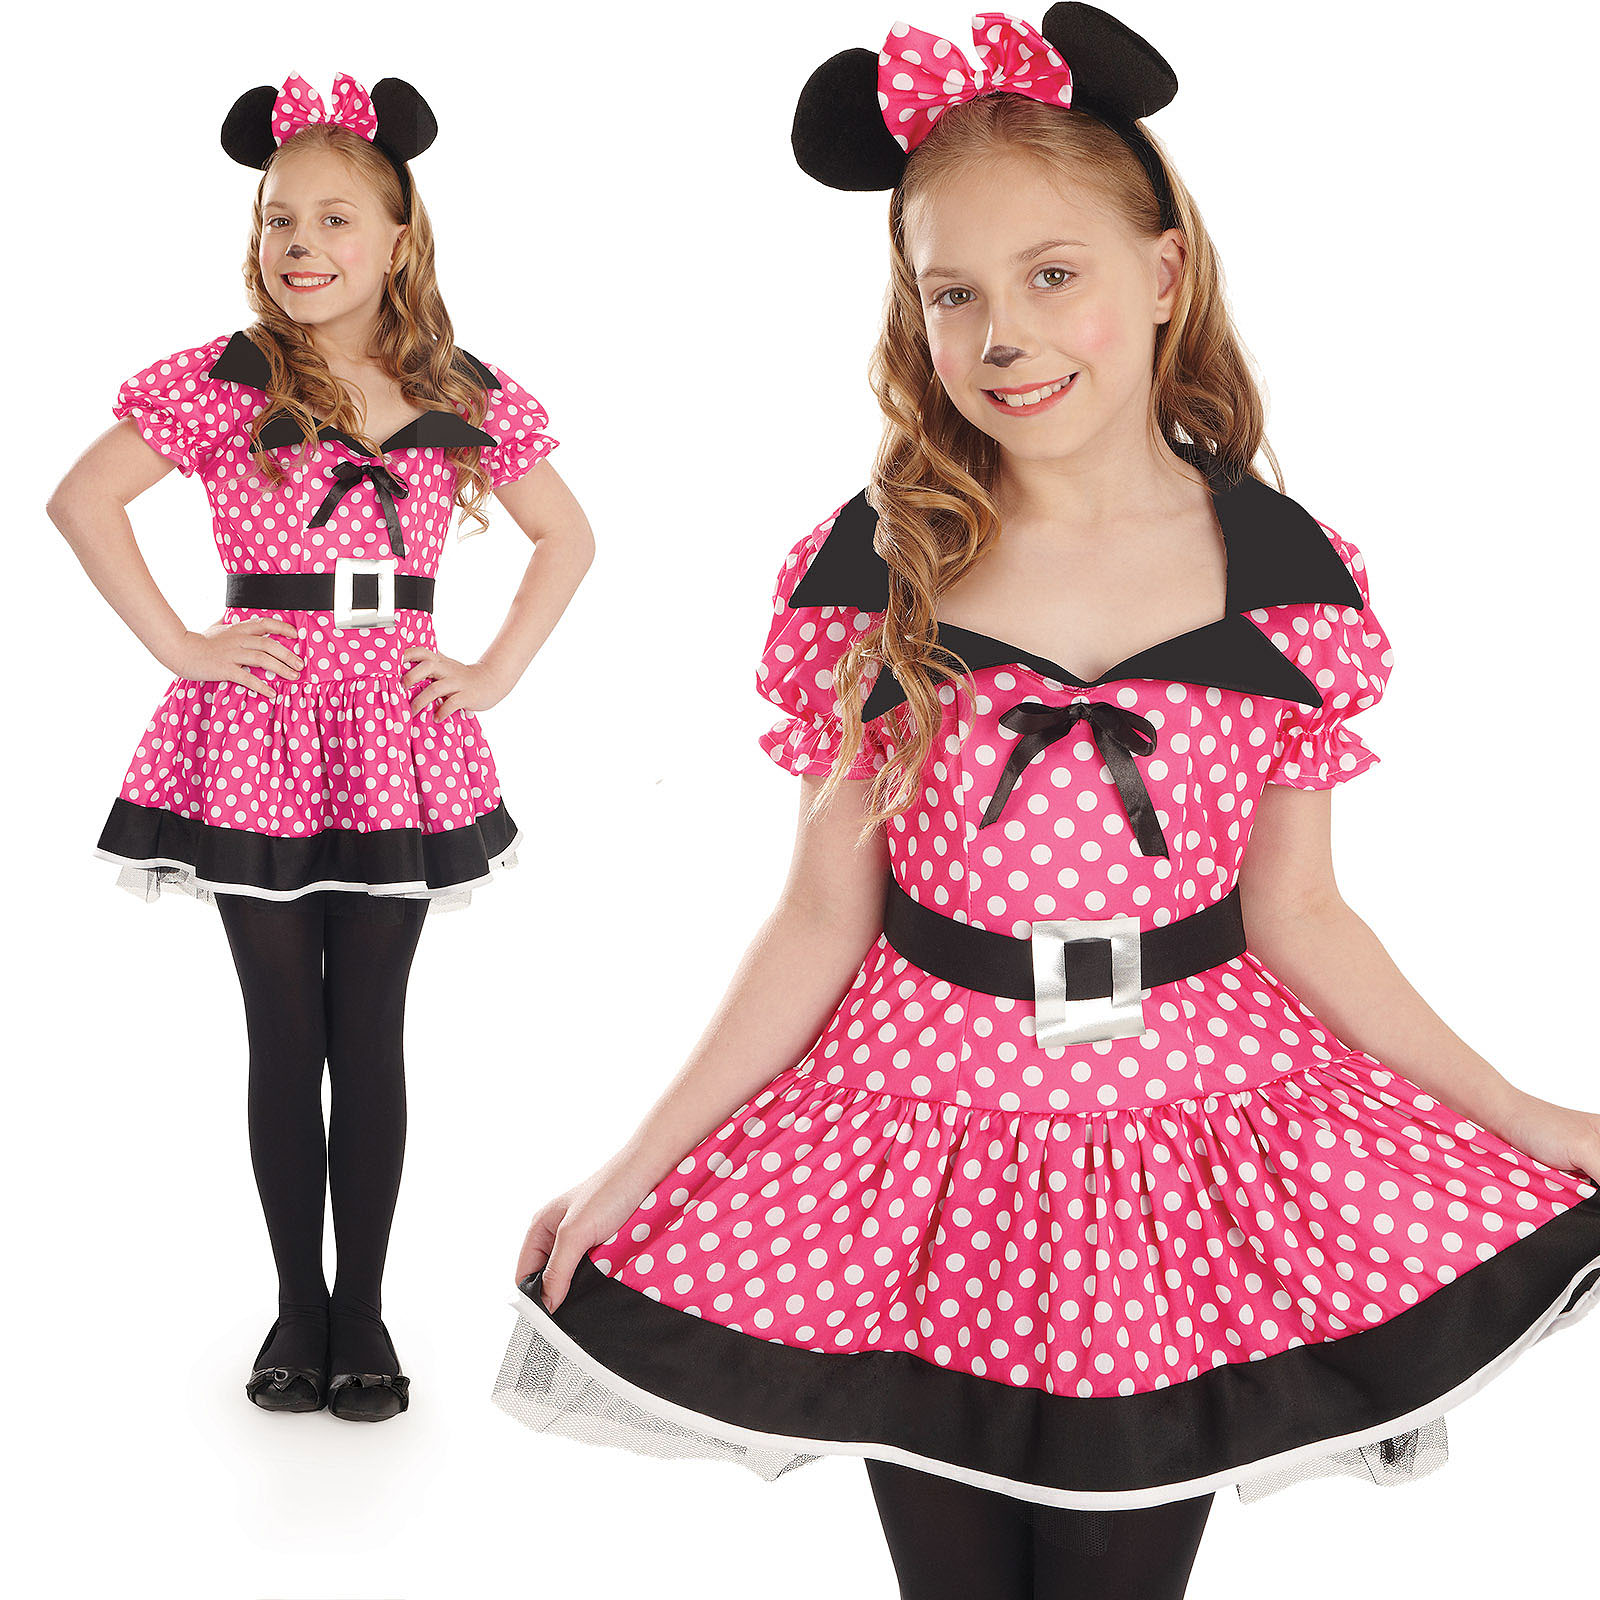 Childrens-Minnie-Mouse-Fancy-Dress-Costume-Disney-Kids-Girls-Outfit-4-12-Yrs thumbnail 3